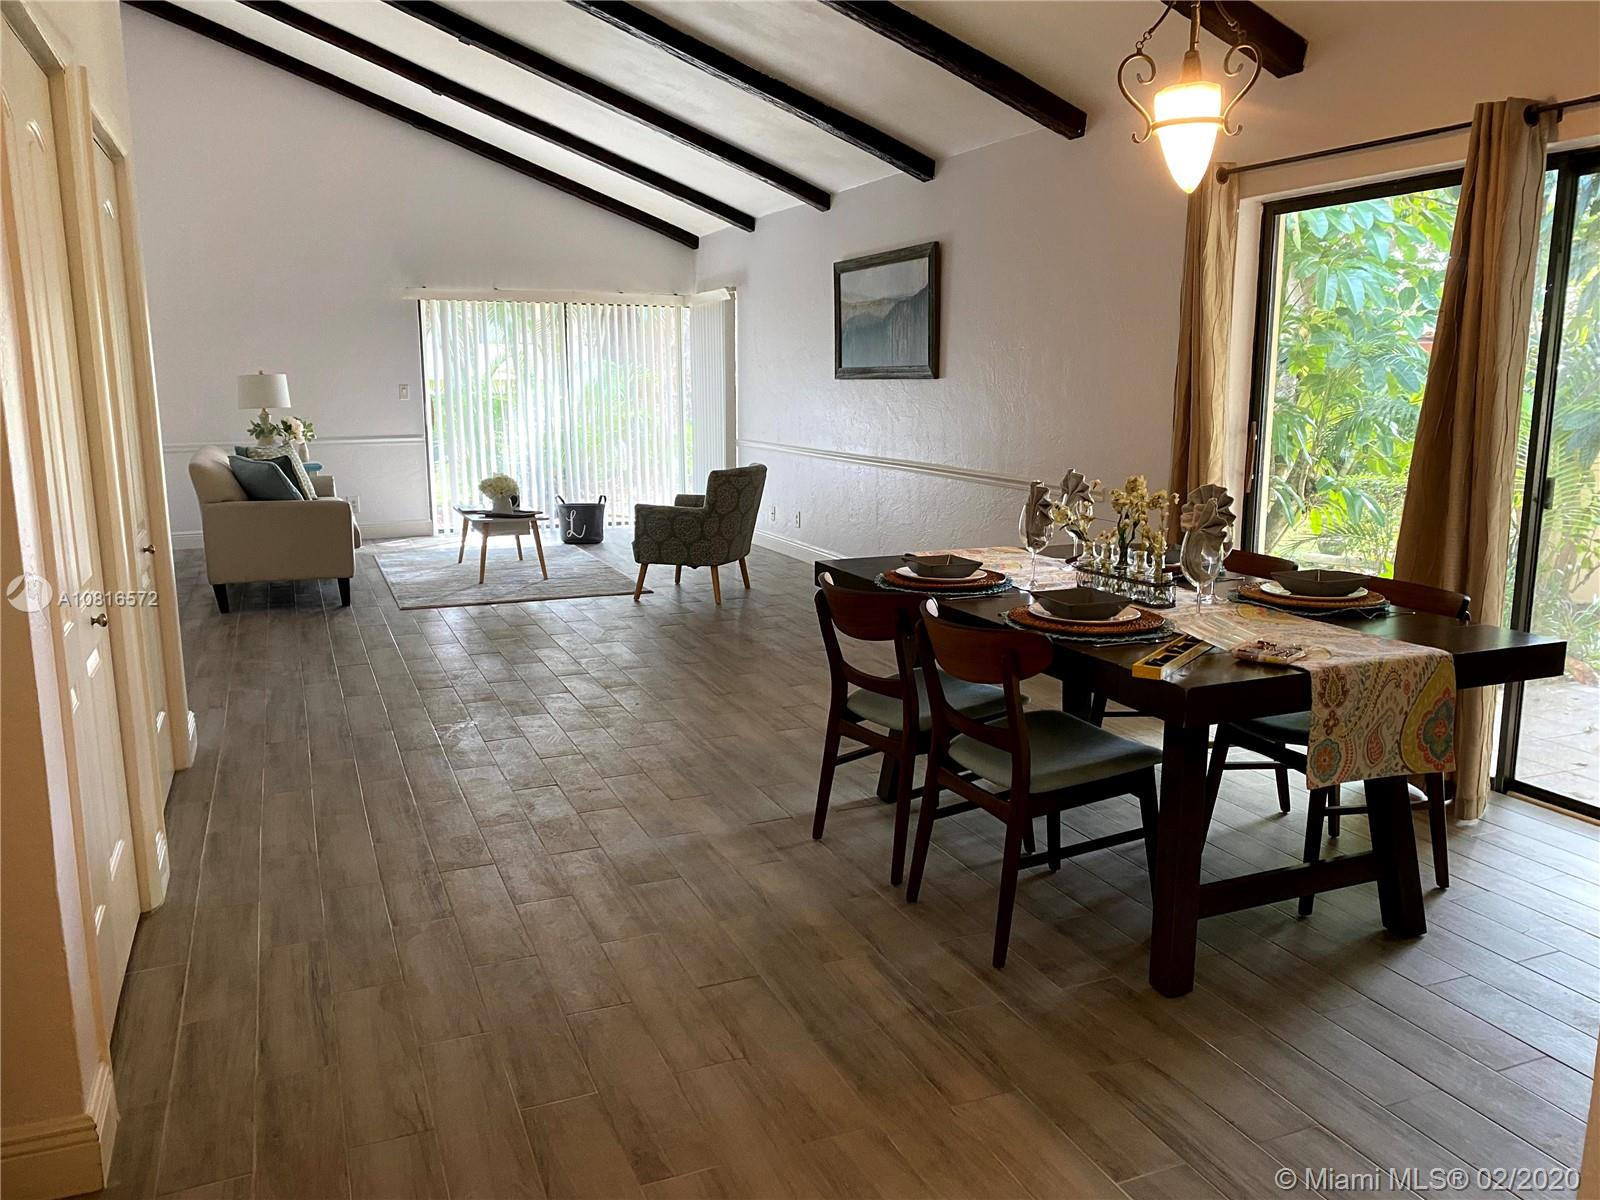 Beautiful and remodel villa in Inverrary Hills, 2 Bed, 2 Bath, with 2 car garage attached, beautiful vaulted ceilings. gated community with 50 acres of pathways and lush landscaping, 3 heated pools. Maintenance included: Building and roof repairs, pest control, landscaping, 24 hours manned gatehouse. SELLER MOTIVATED.Pets OK. All ages.